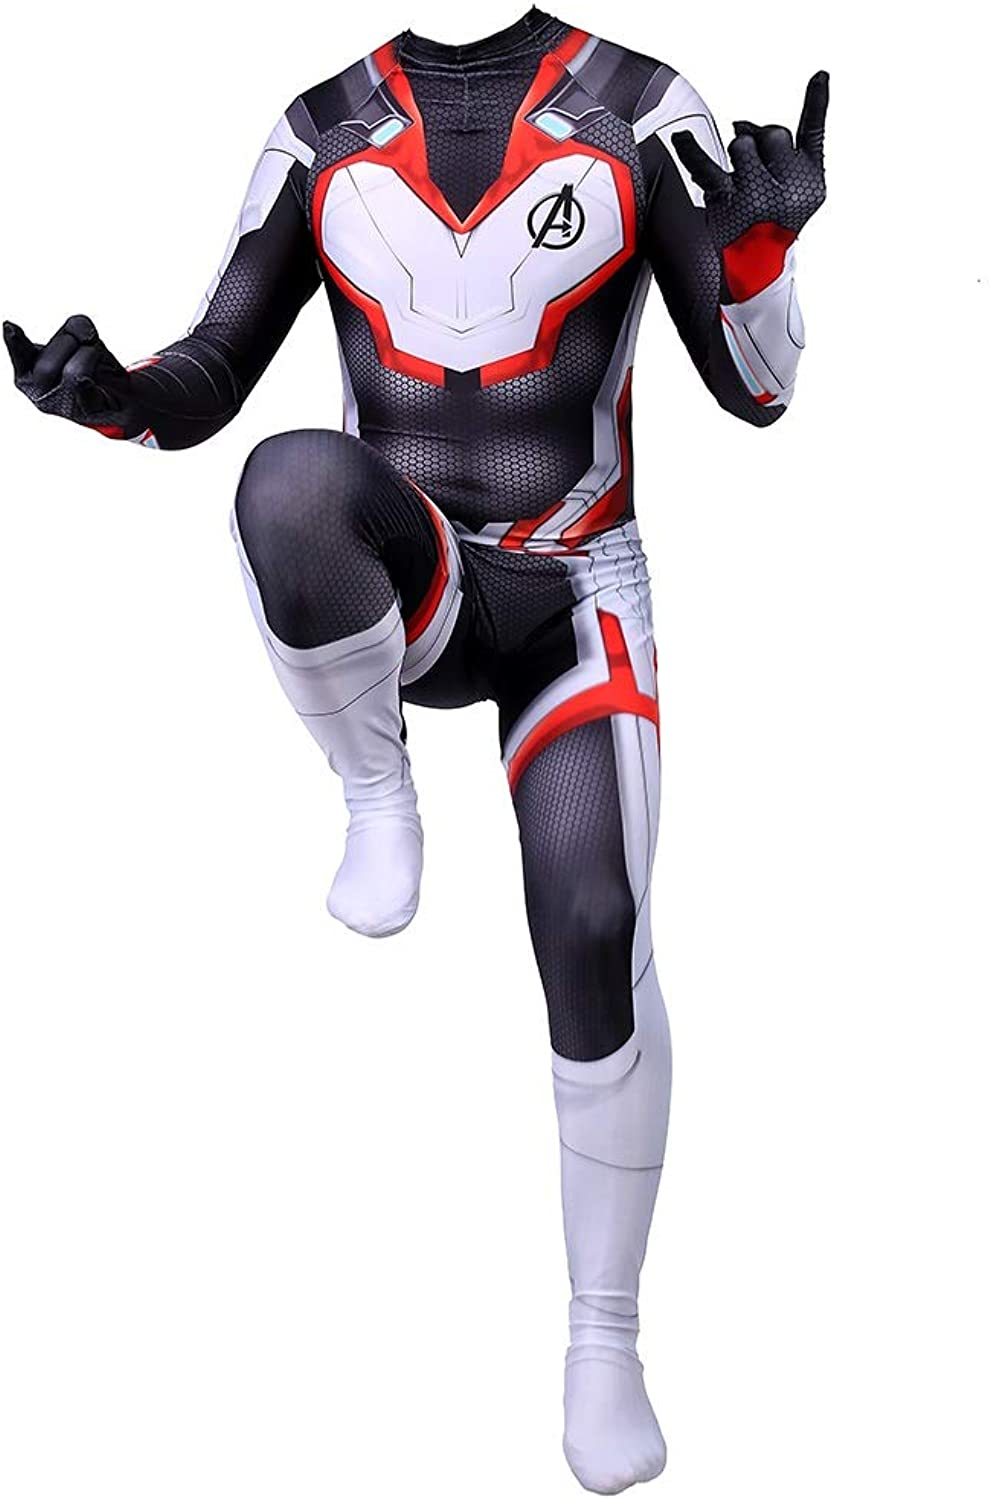 TOYSGAMES Quantum Battle Spider Man Costume Adult Cosplay Lycra Elastic Tights Movie Stage Costume Props (color   Black, Size   XXL)